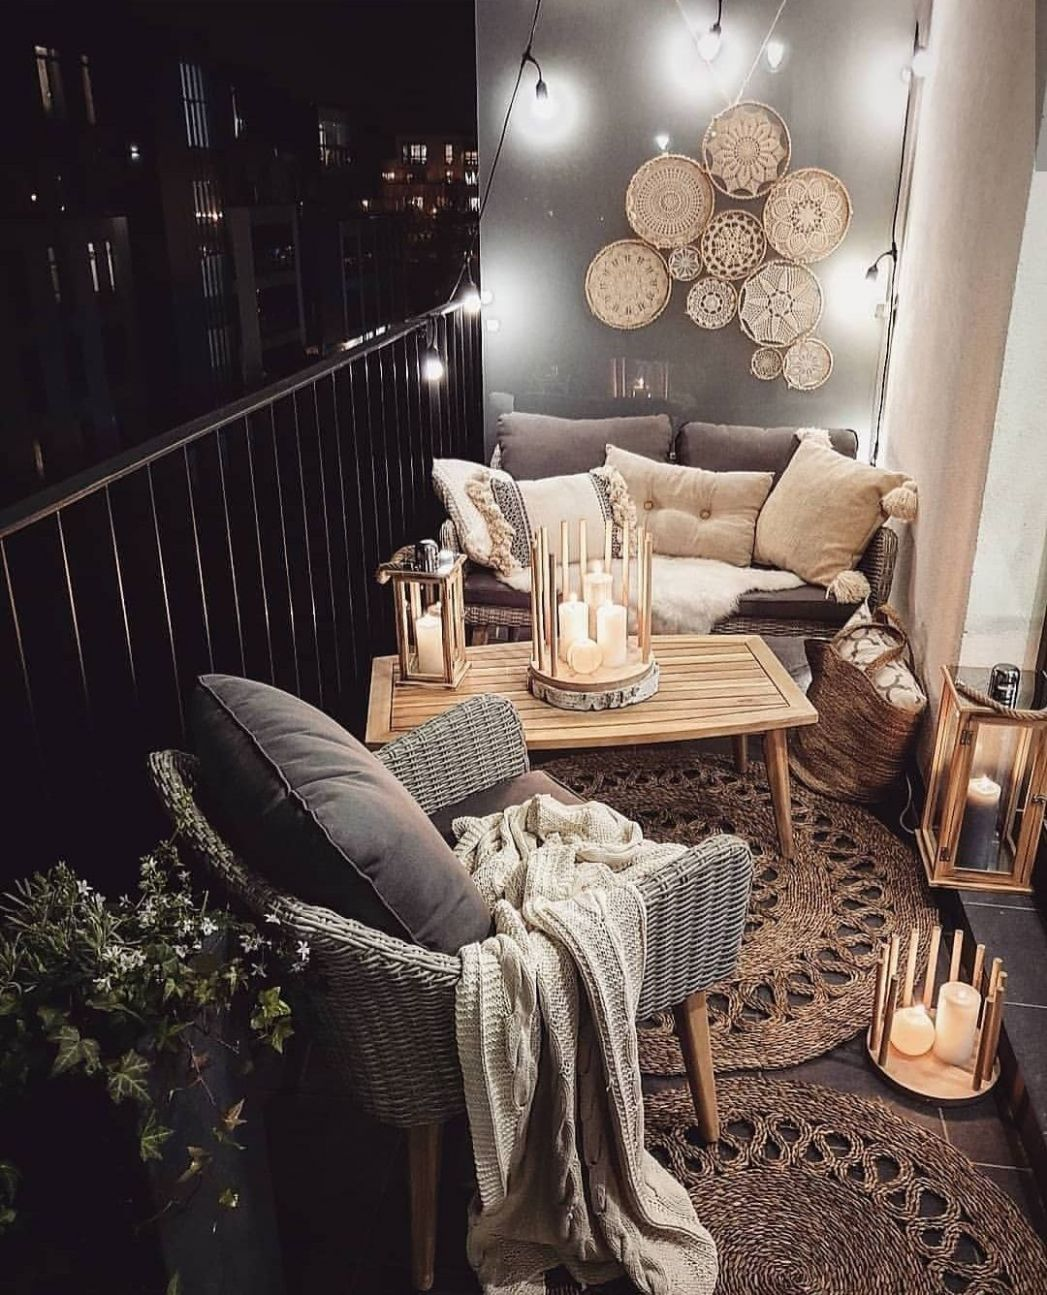 The Best Decorated Small Outdoor Balconies on Pinterest | First ...